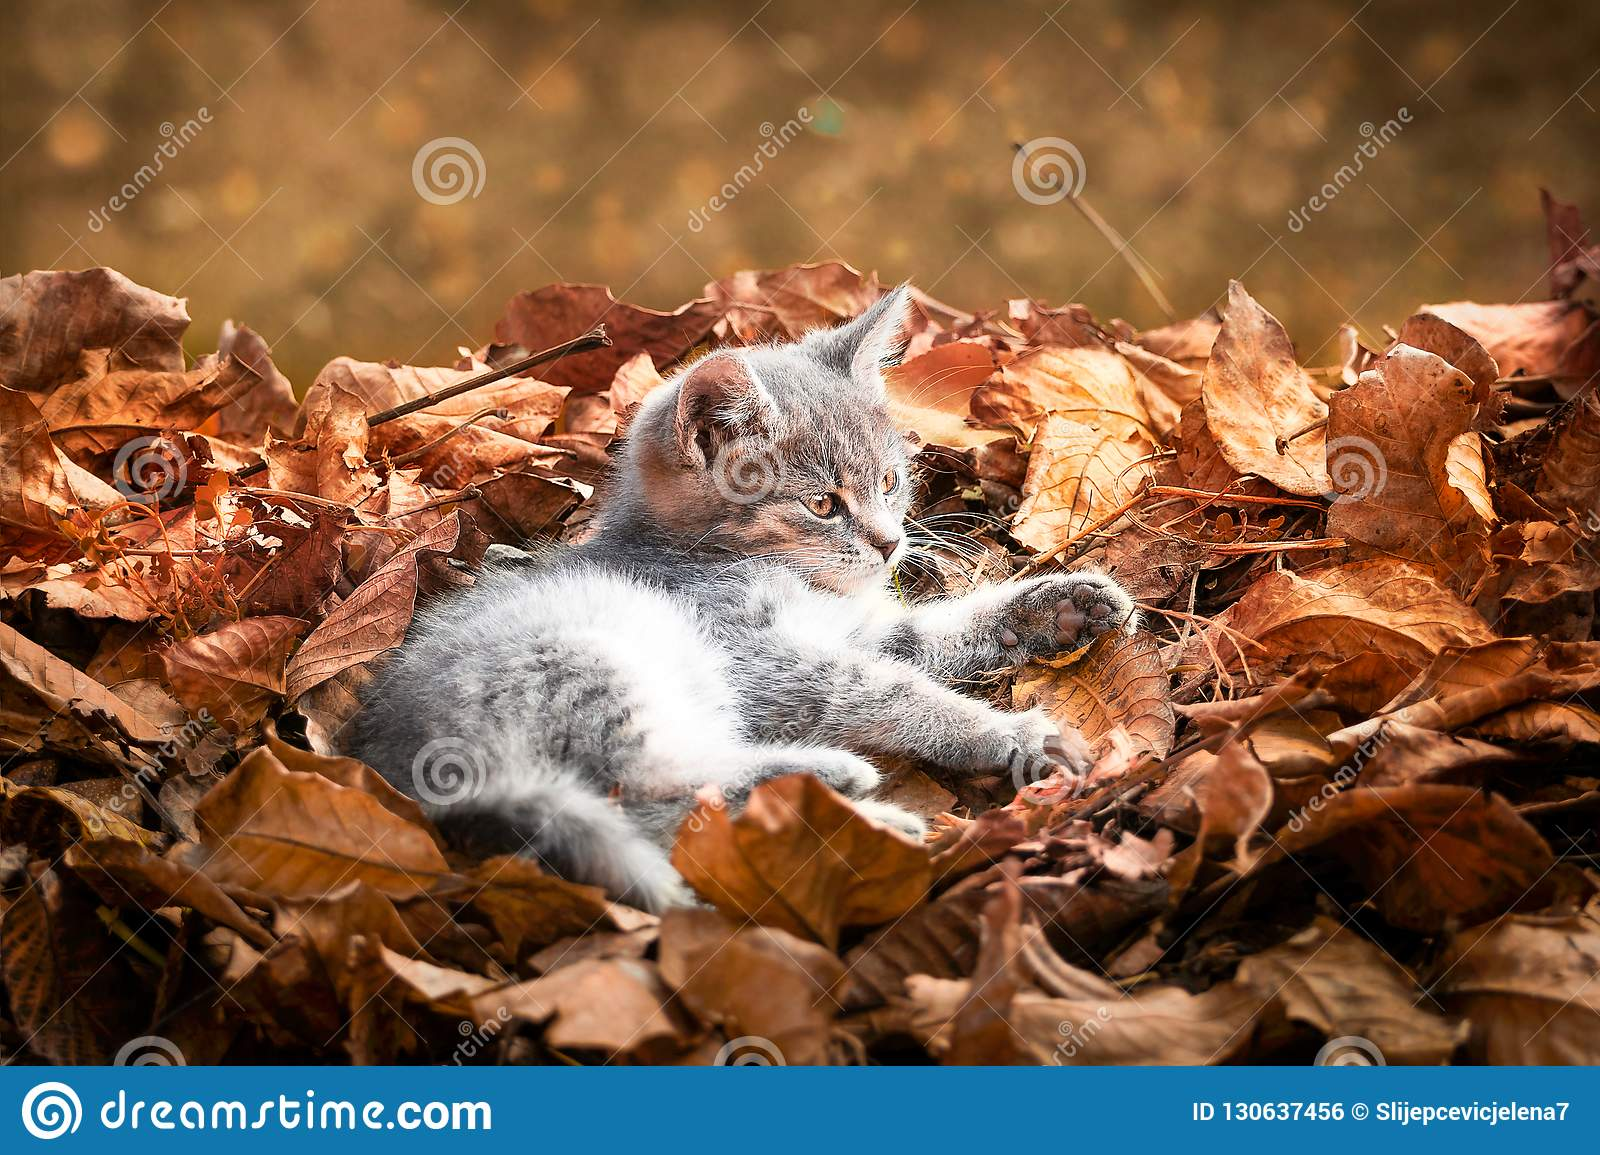 Gray kitten laying in pile of autumn leaves